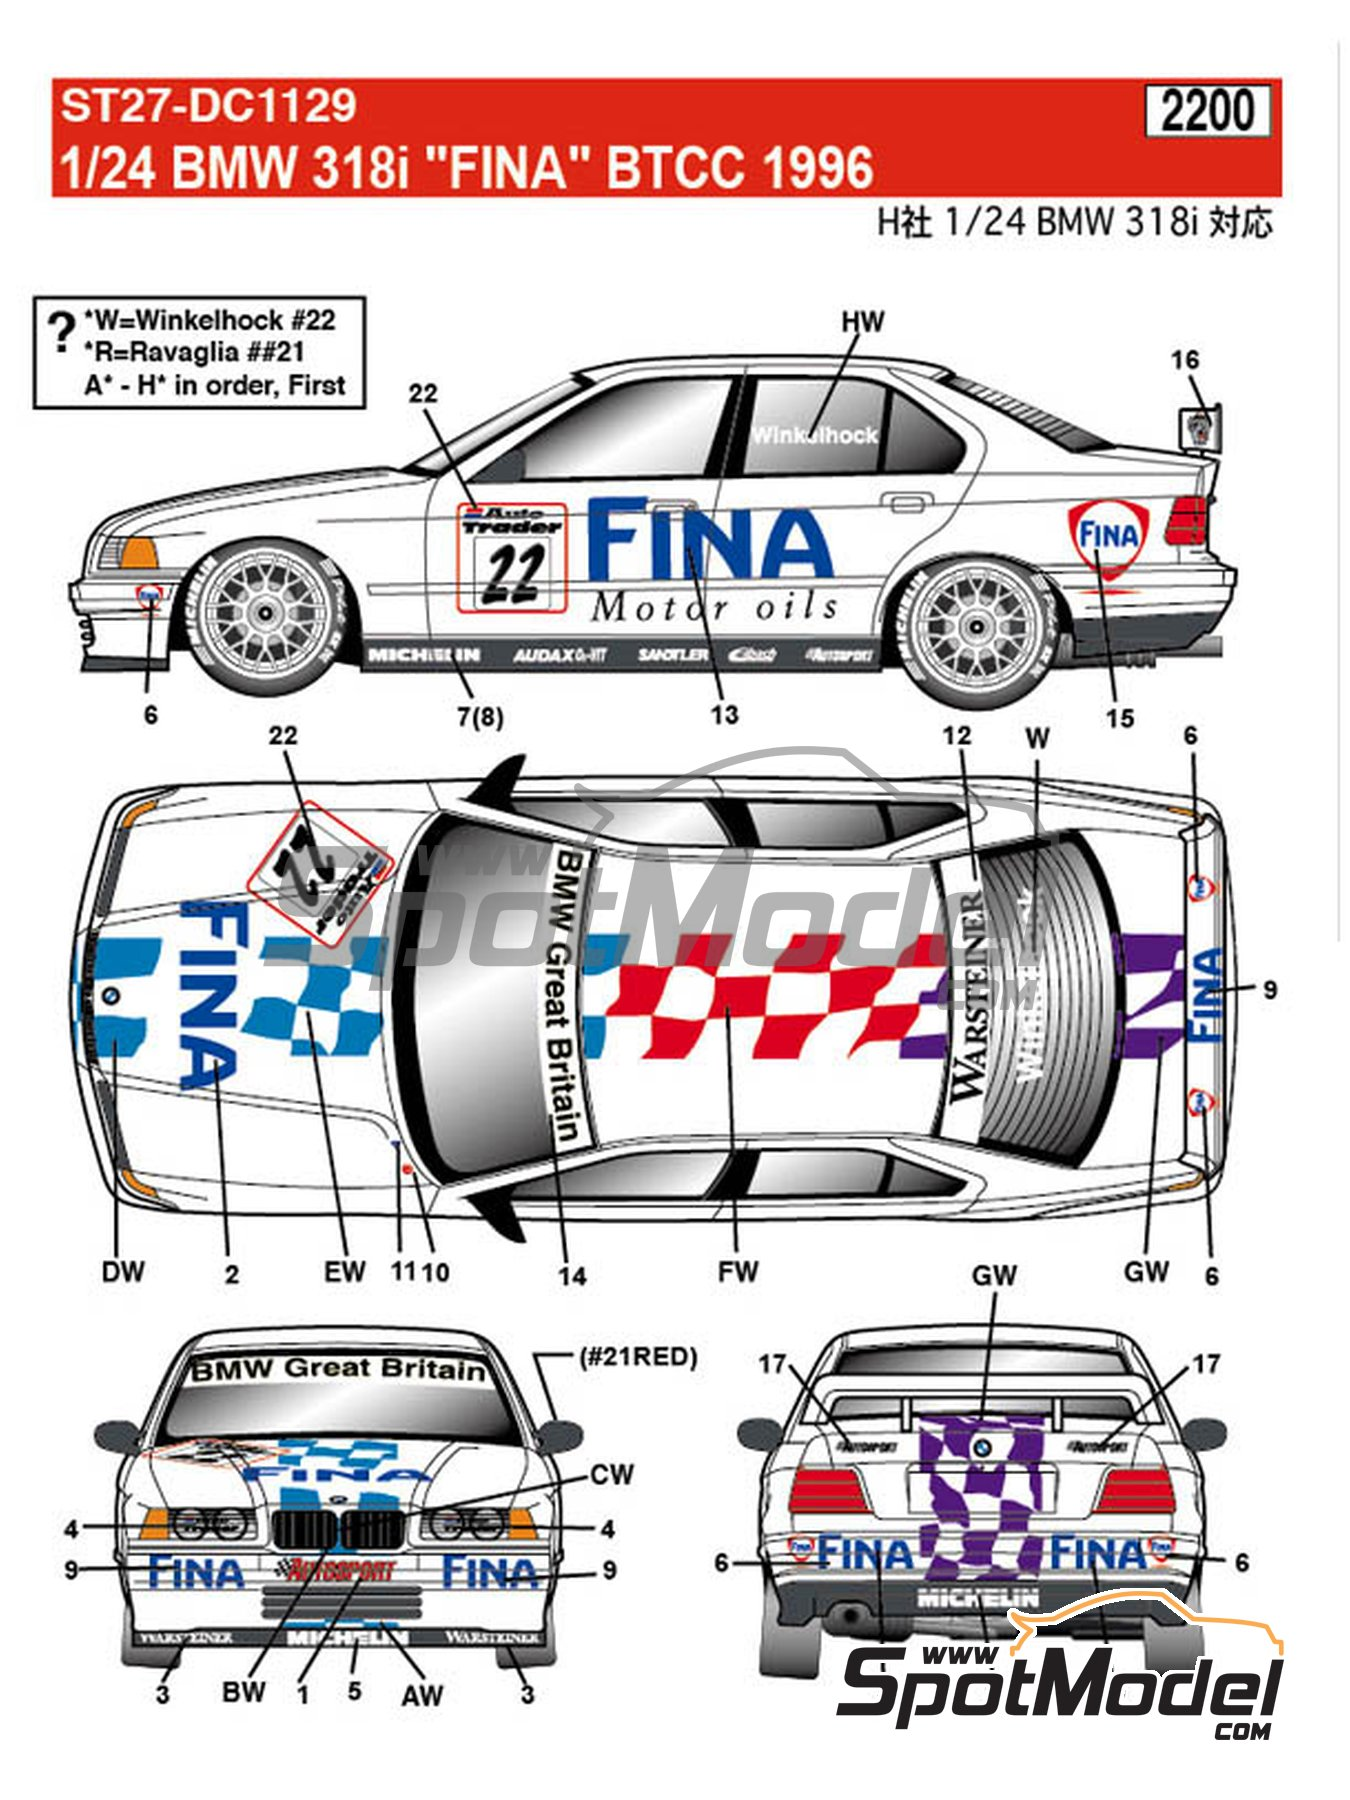 BMW 318i Fina - British Touring Car Championship (BTCC) 1996 | Marking / livery in 1/24 scale manufactured by Studio27 (ref.ST27-DC1129) image